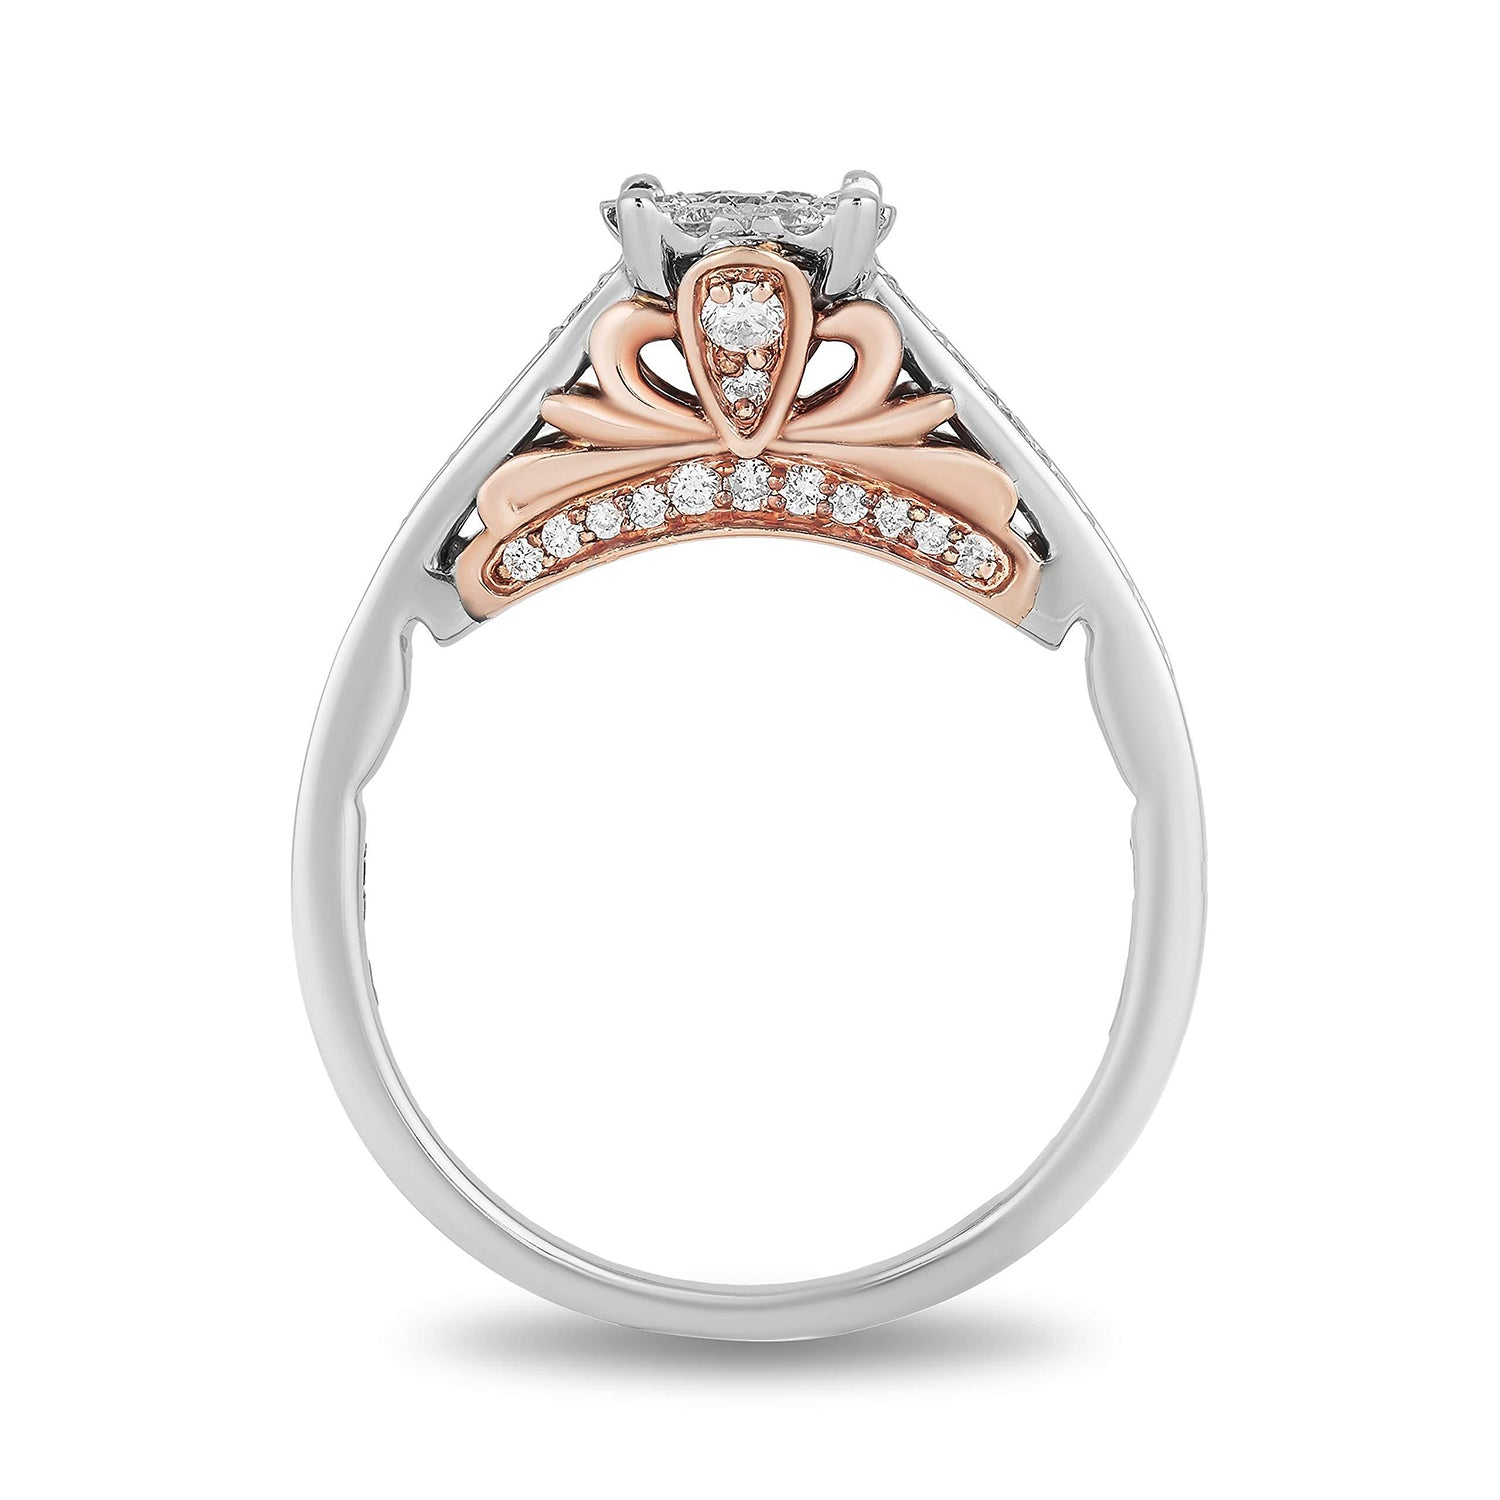 enchanted_disney-majestic-princess-white_diamond_ring-rose_and_white_gold_5/8CTTW_2